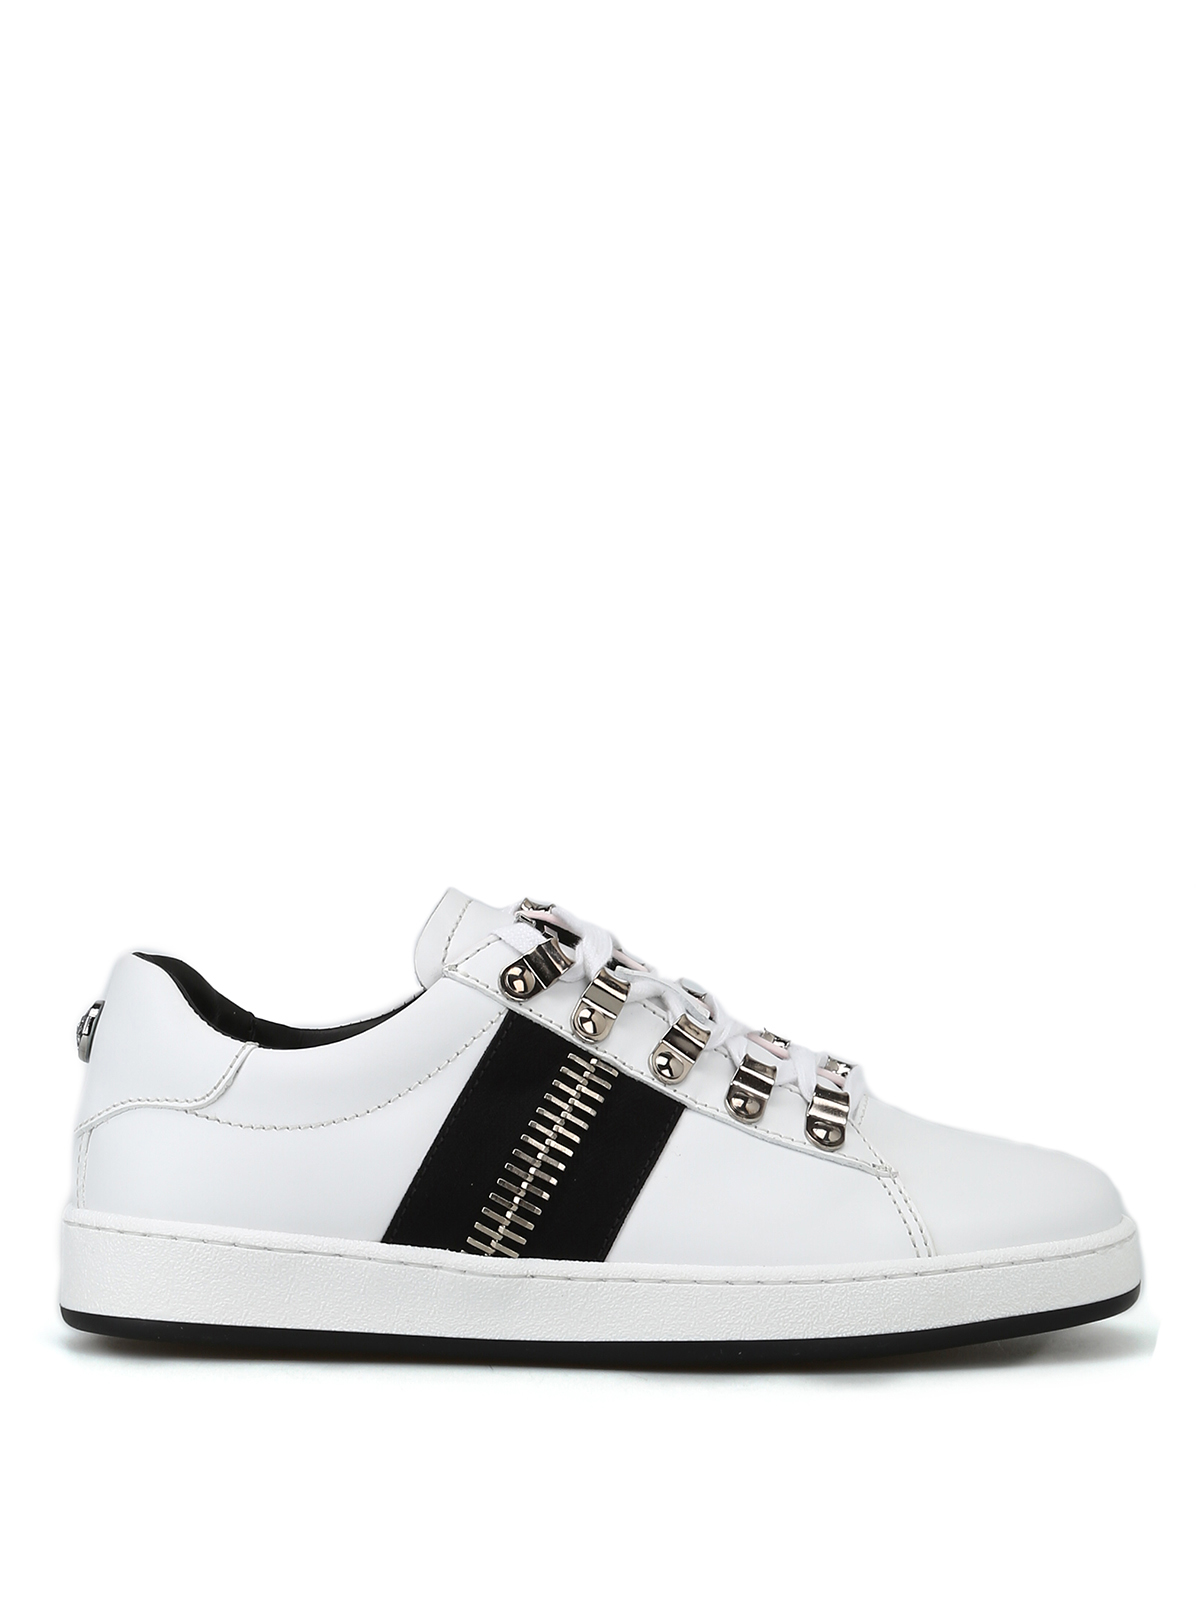 1afa76fed6ecd balmain -trainers-white-leather-esther-low-top-sneakers-00000145921f00s001.jpg